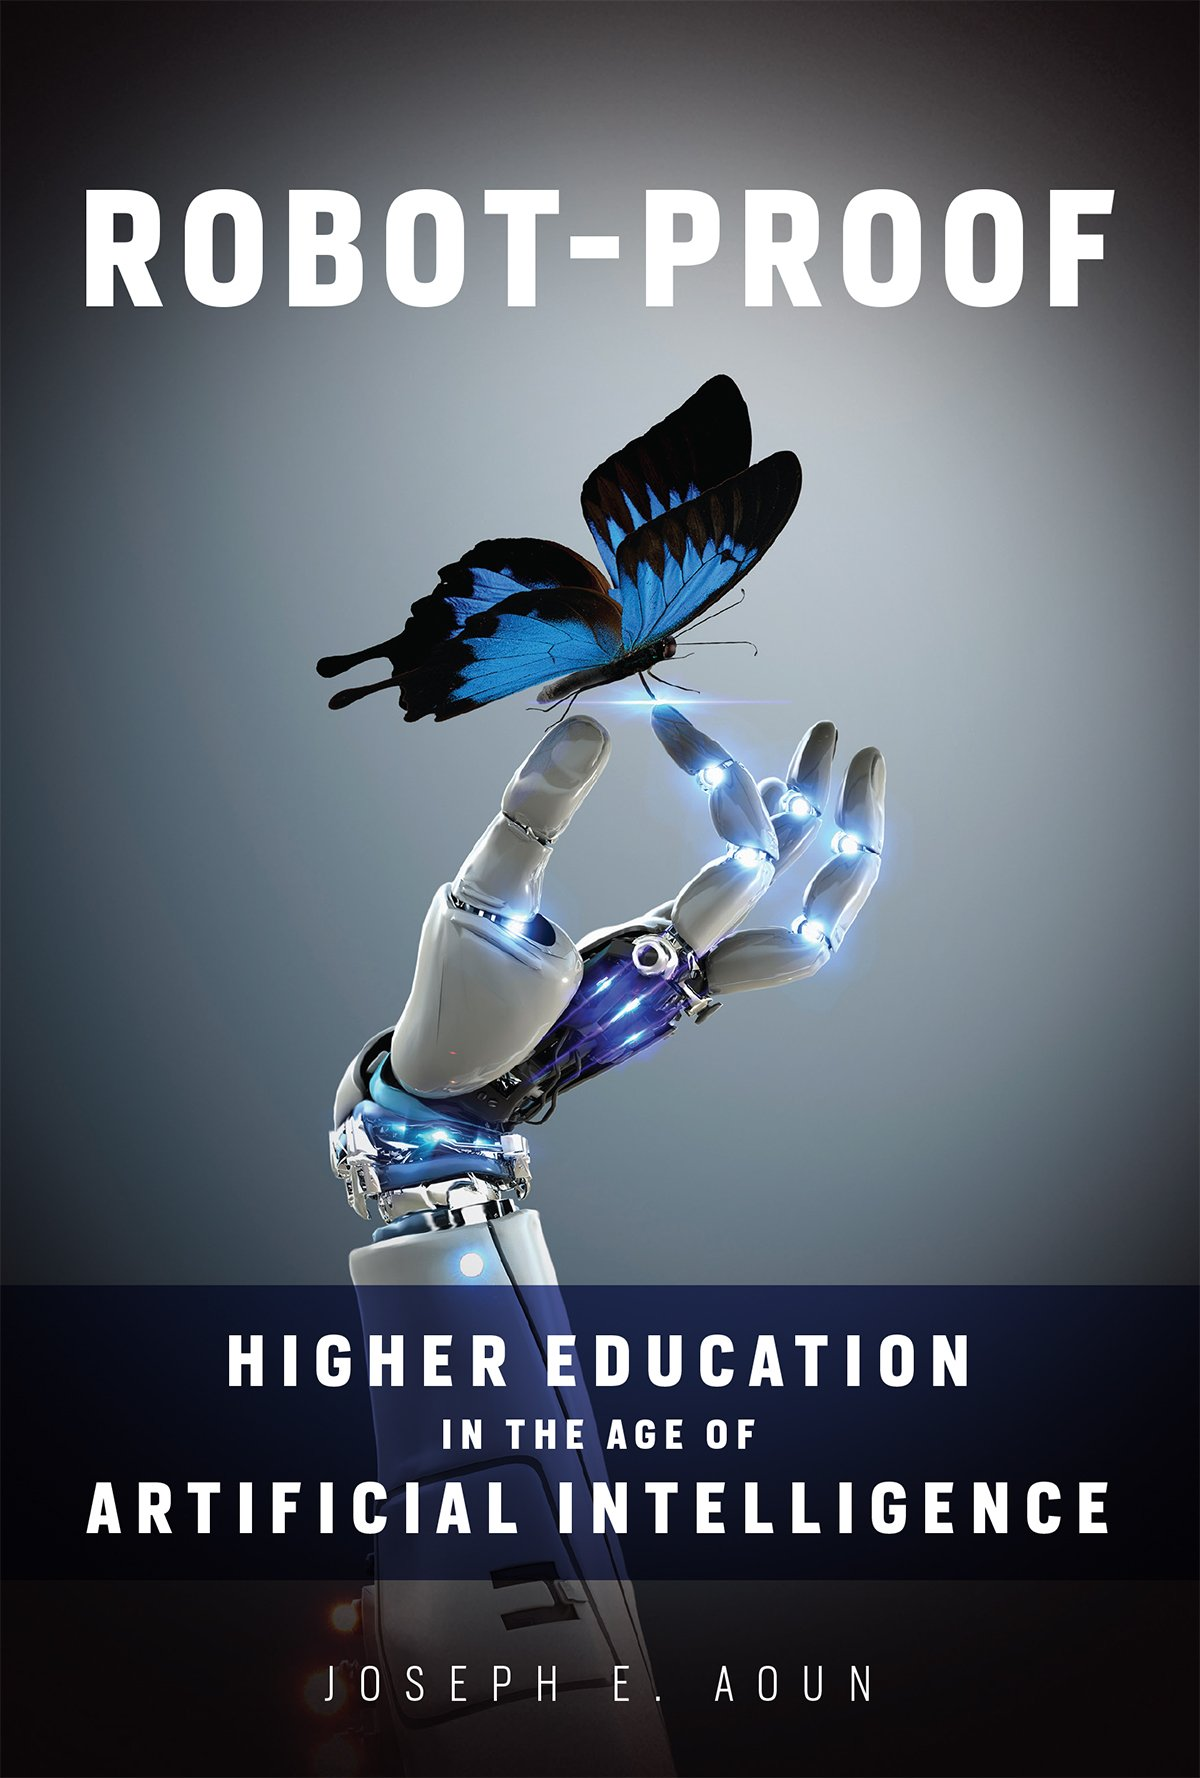 Robot-Proof: Higher Education in the Age of Artificial